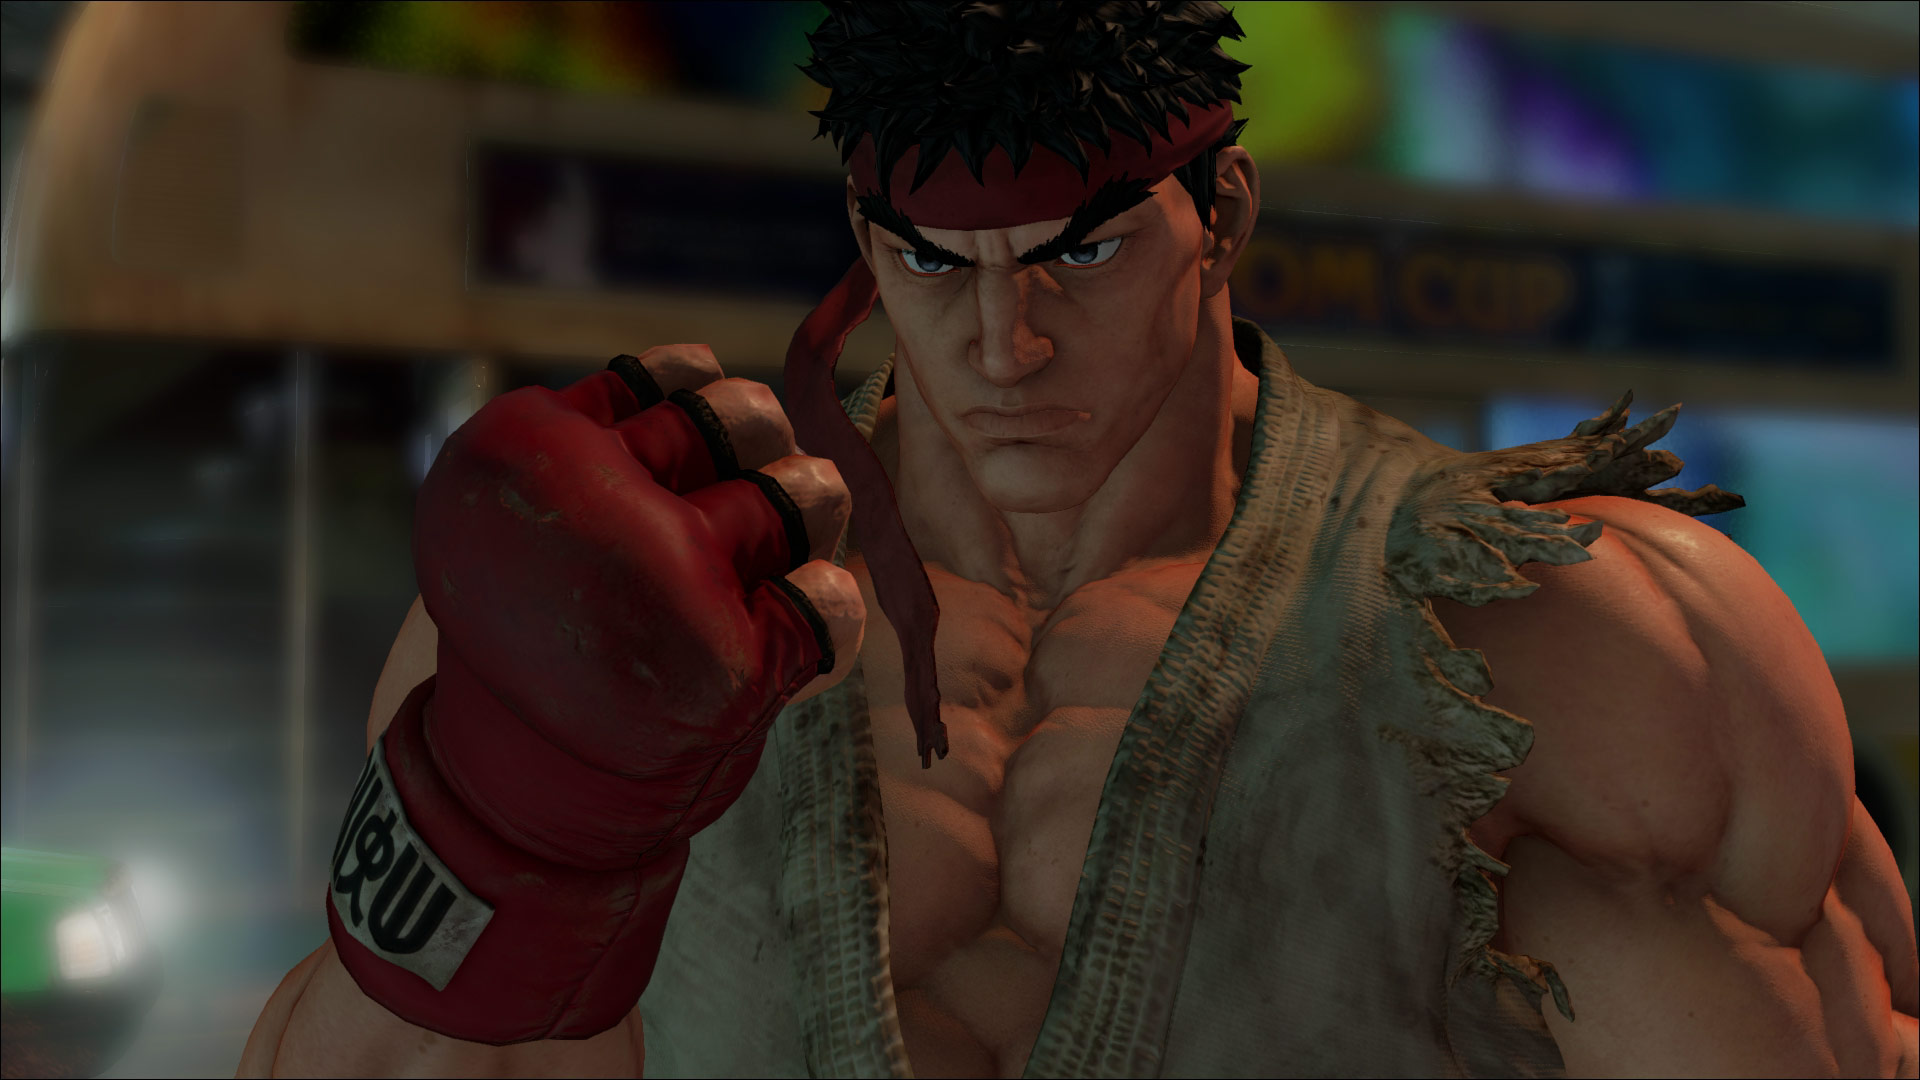 Street Fighter 5 high resolution screen shots, cover art and logo image #4